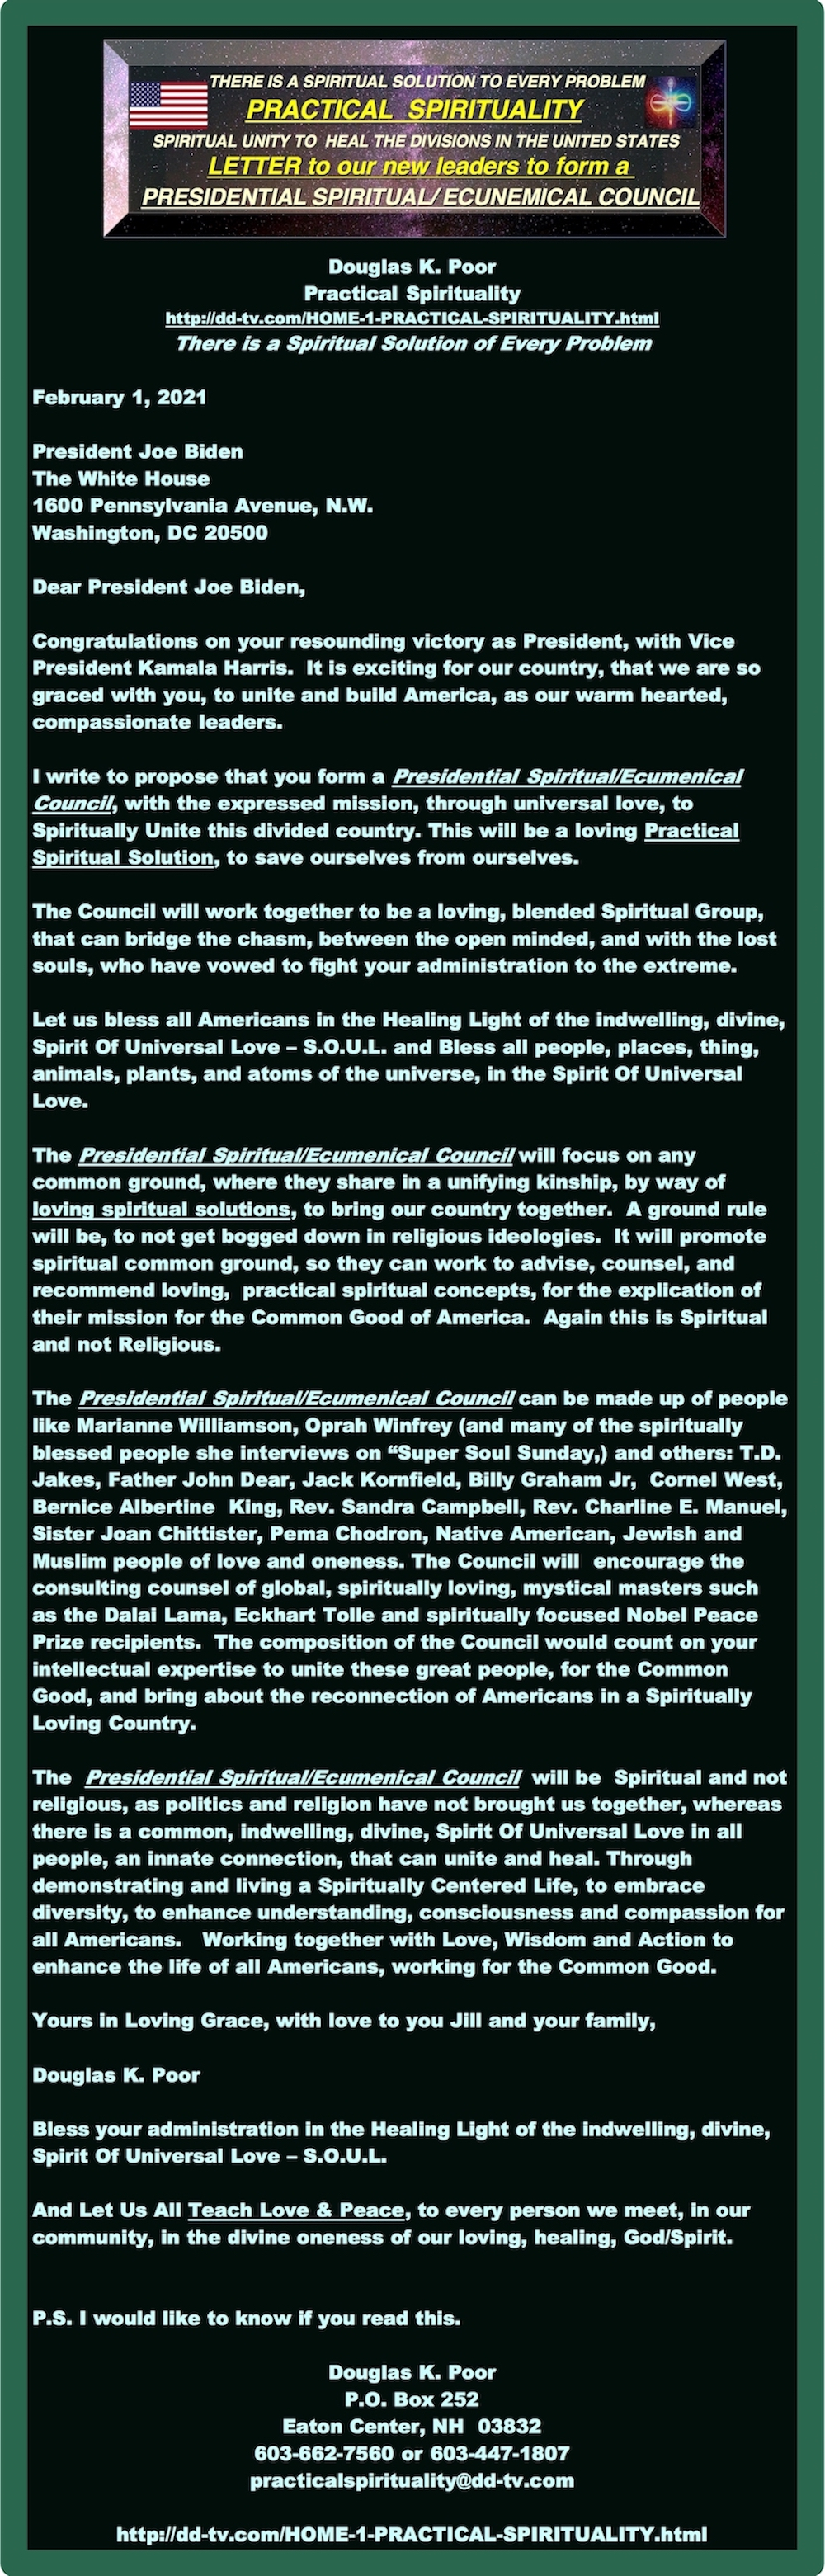 =========================================================LETTER-FOR-PRESIDENTIAL-SPIRITUAL-ECUNEMICAL-COUNCILj===============================================================LETTER-FOR-PRESIDENTIAL-SPIRITUAL-ECUNEMICAL-COUNCIL